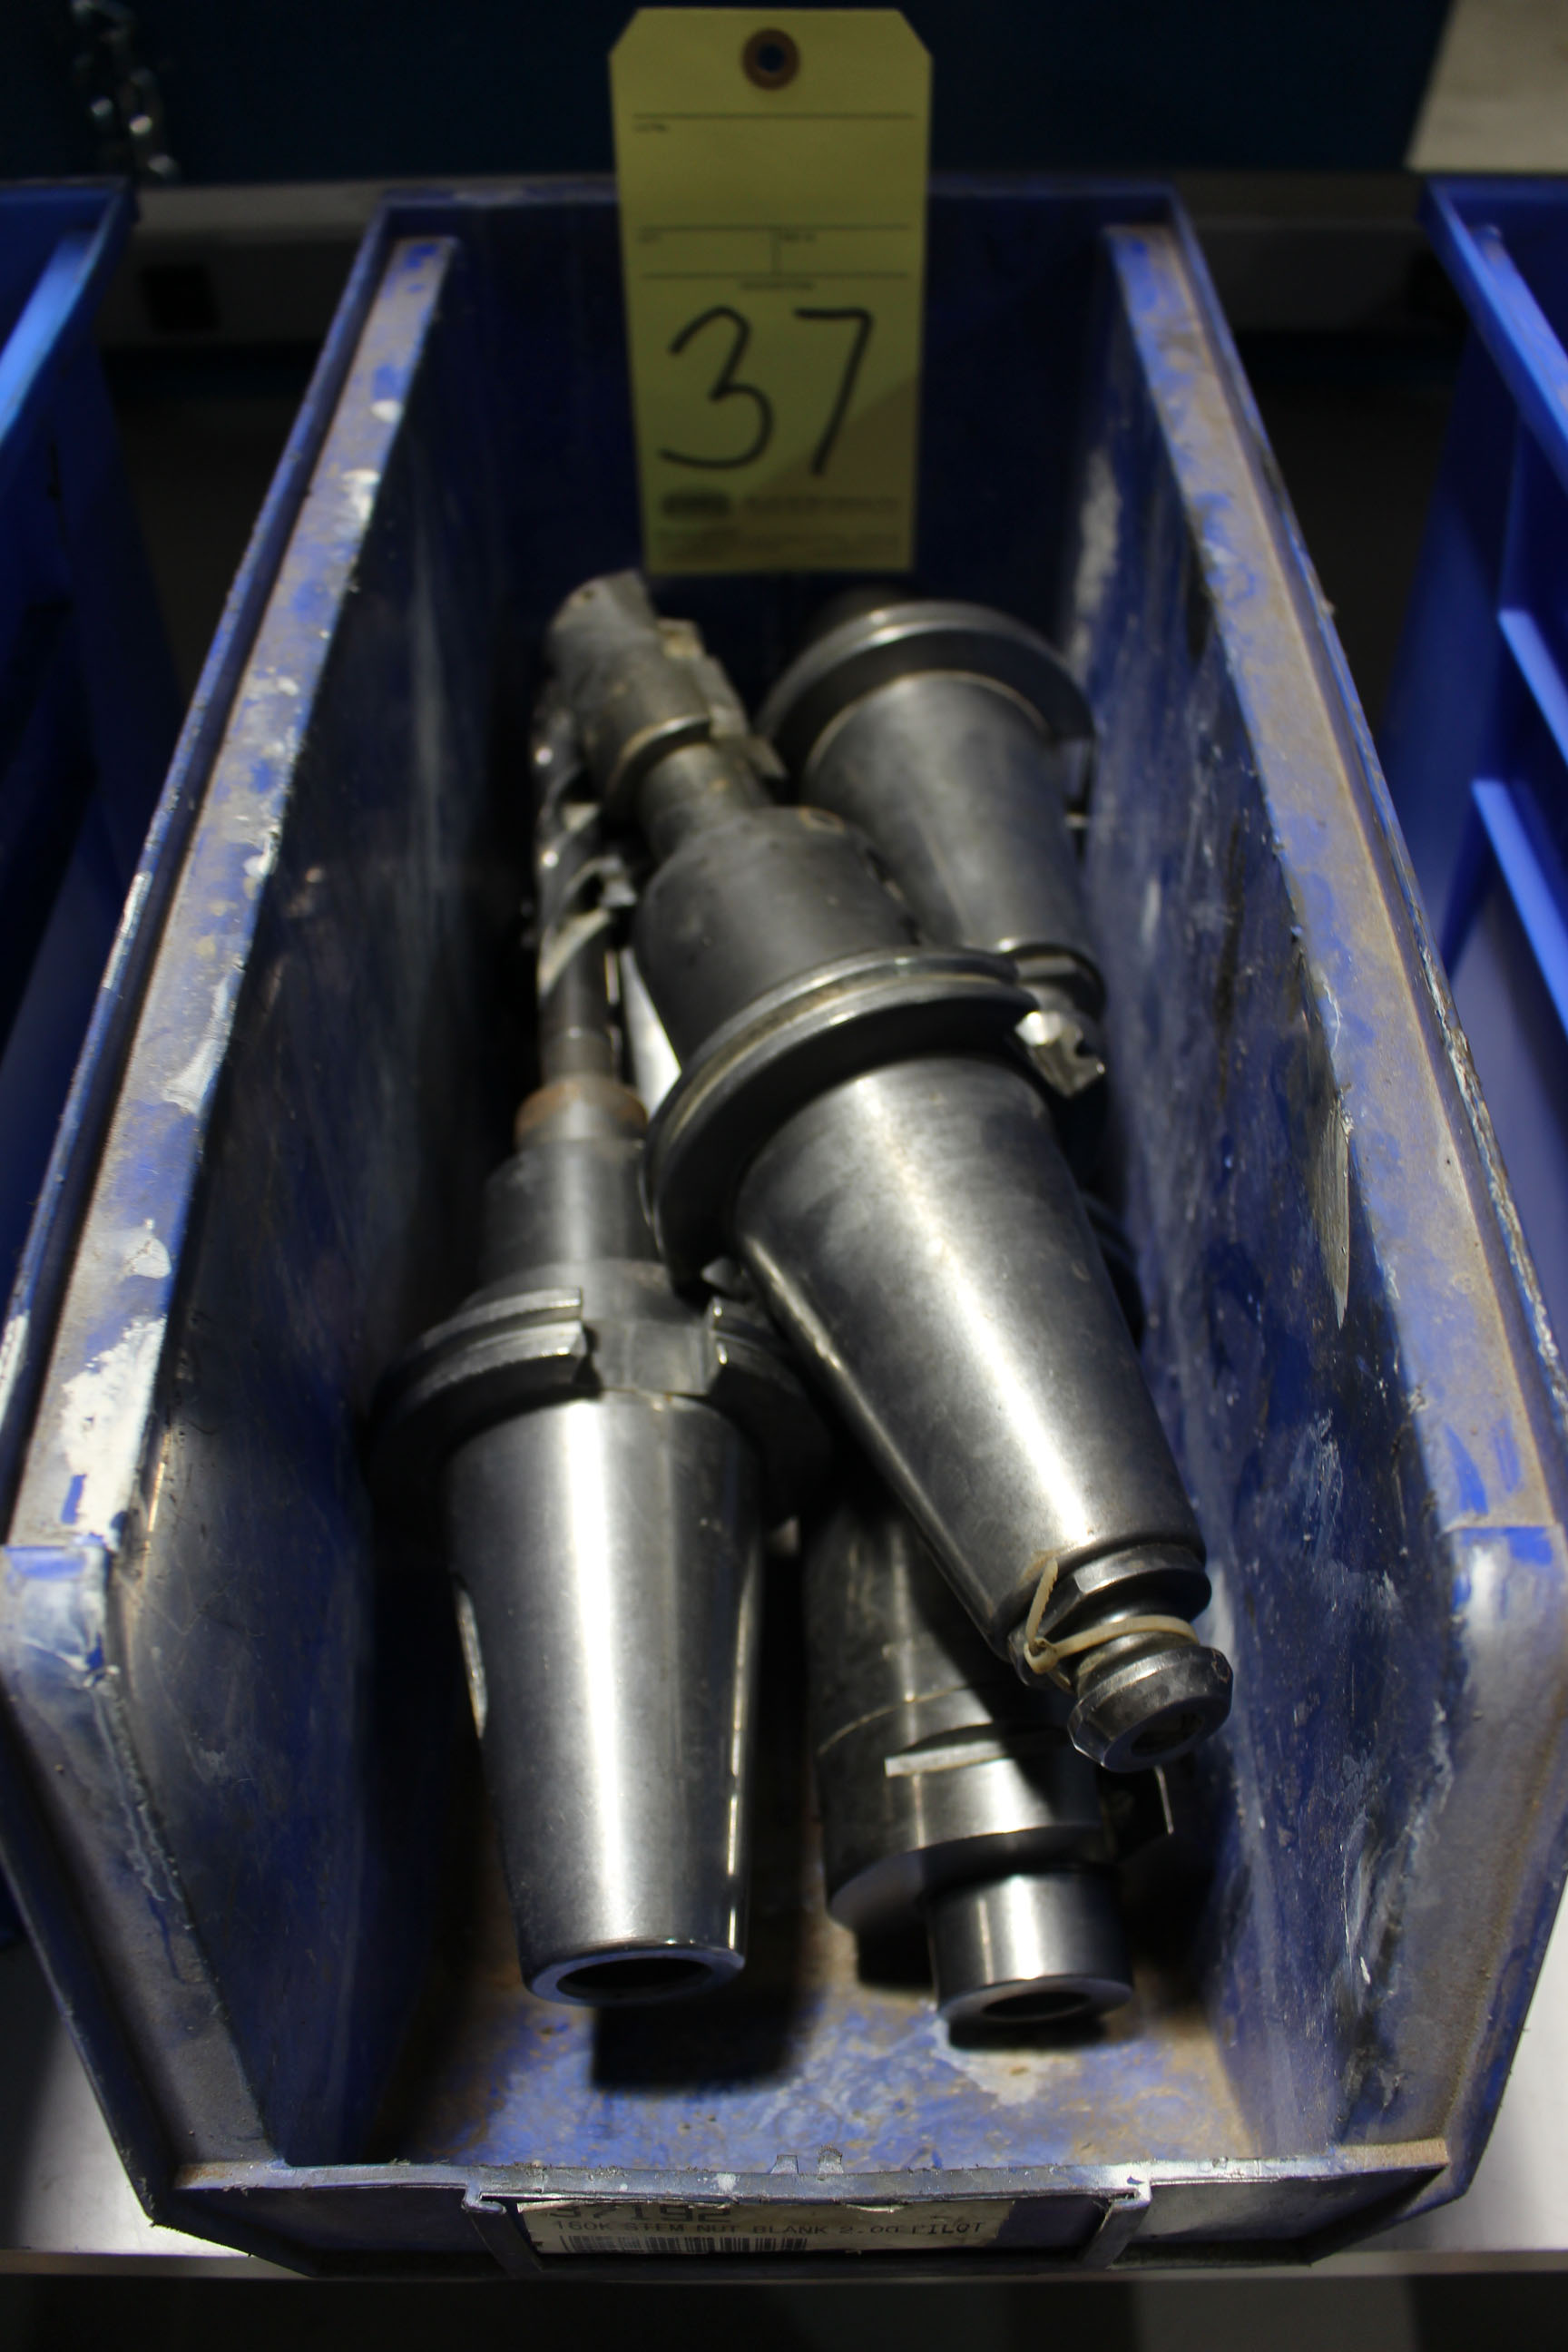 Lot 37 - LOT OF CAT-50 TOOLING, approx. 5 (in one bin)